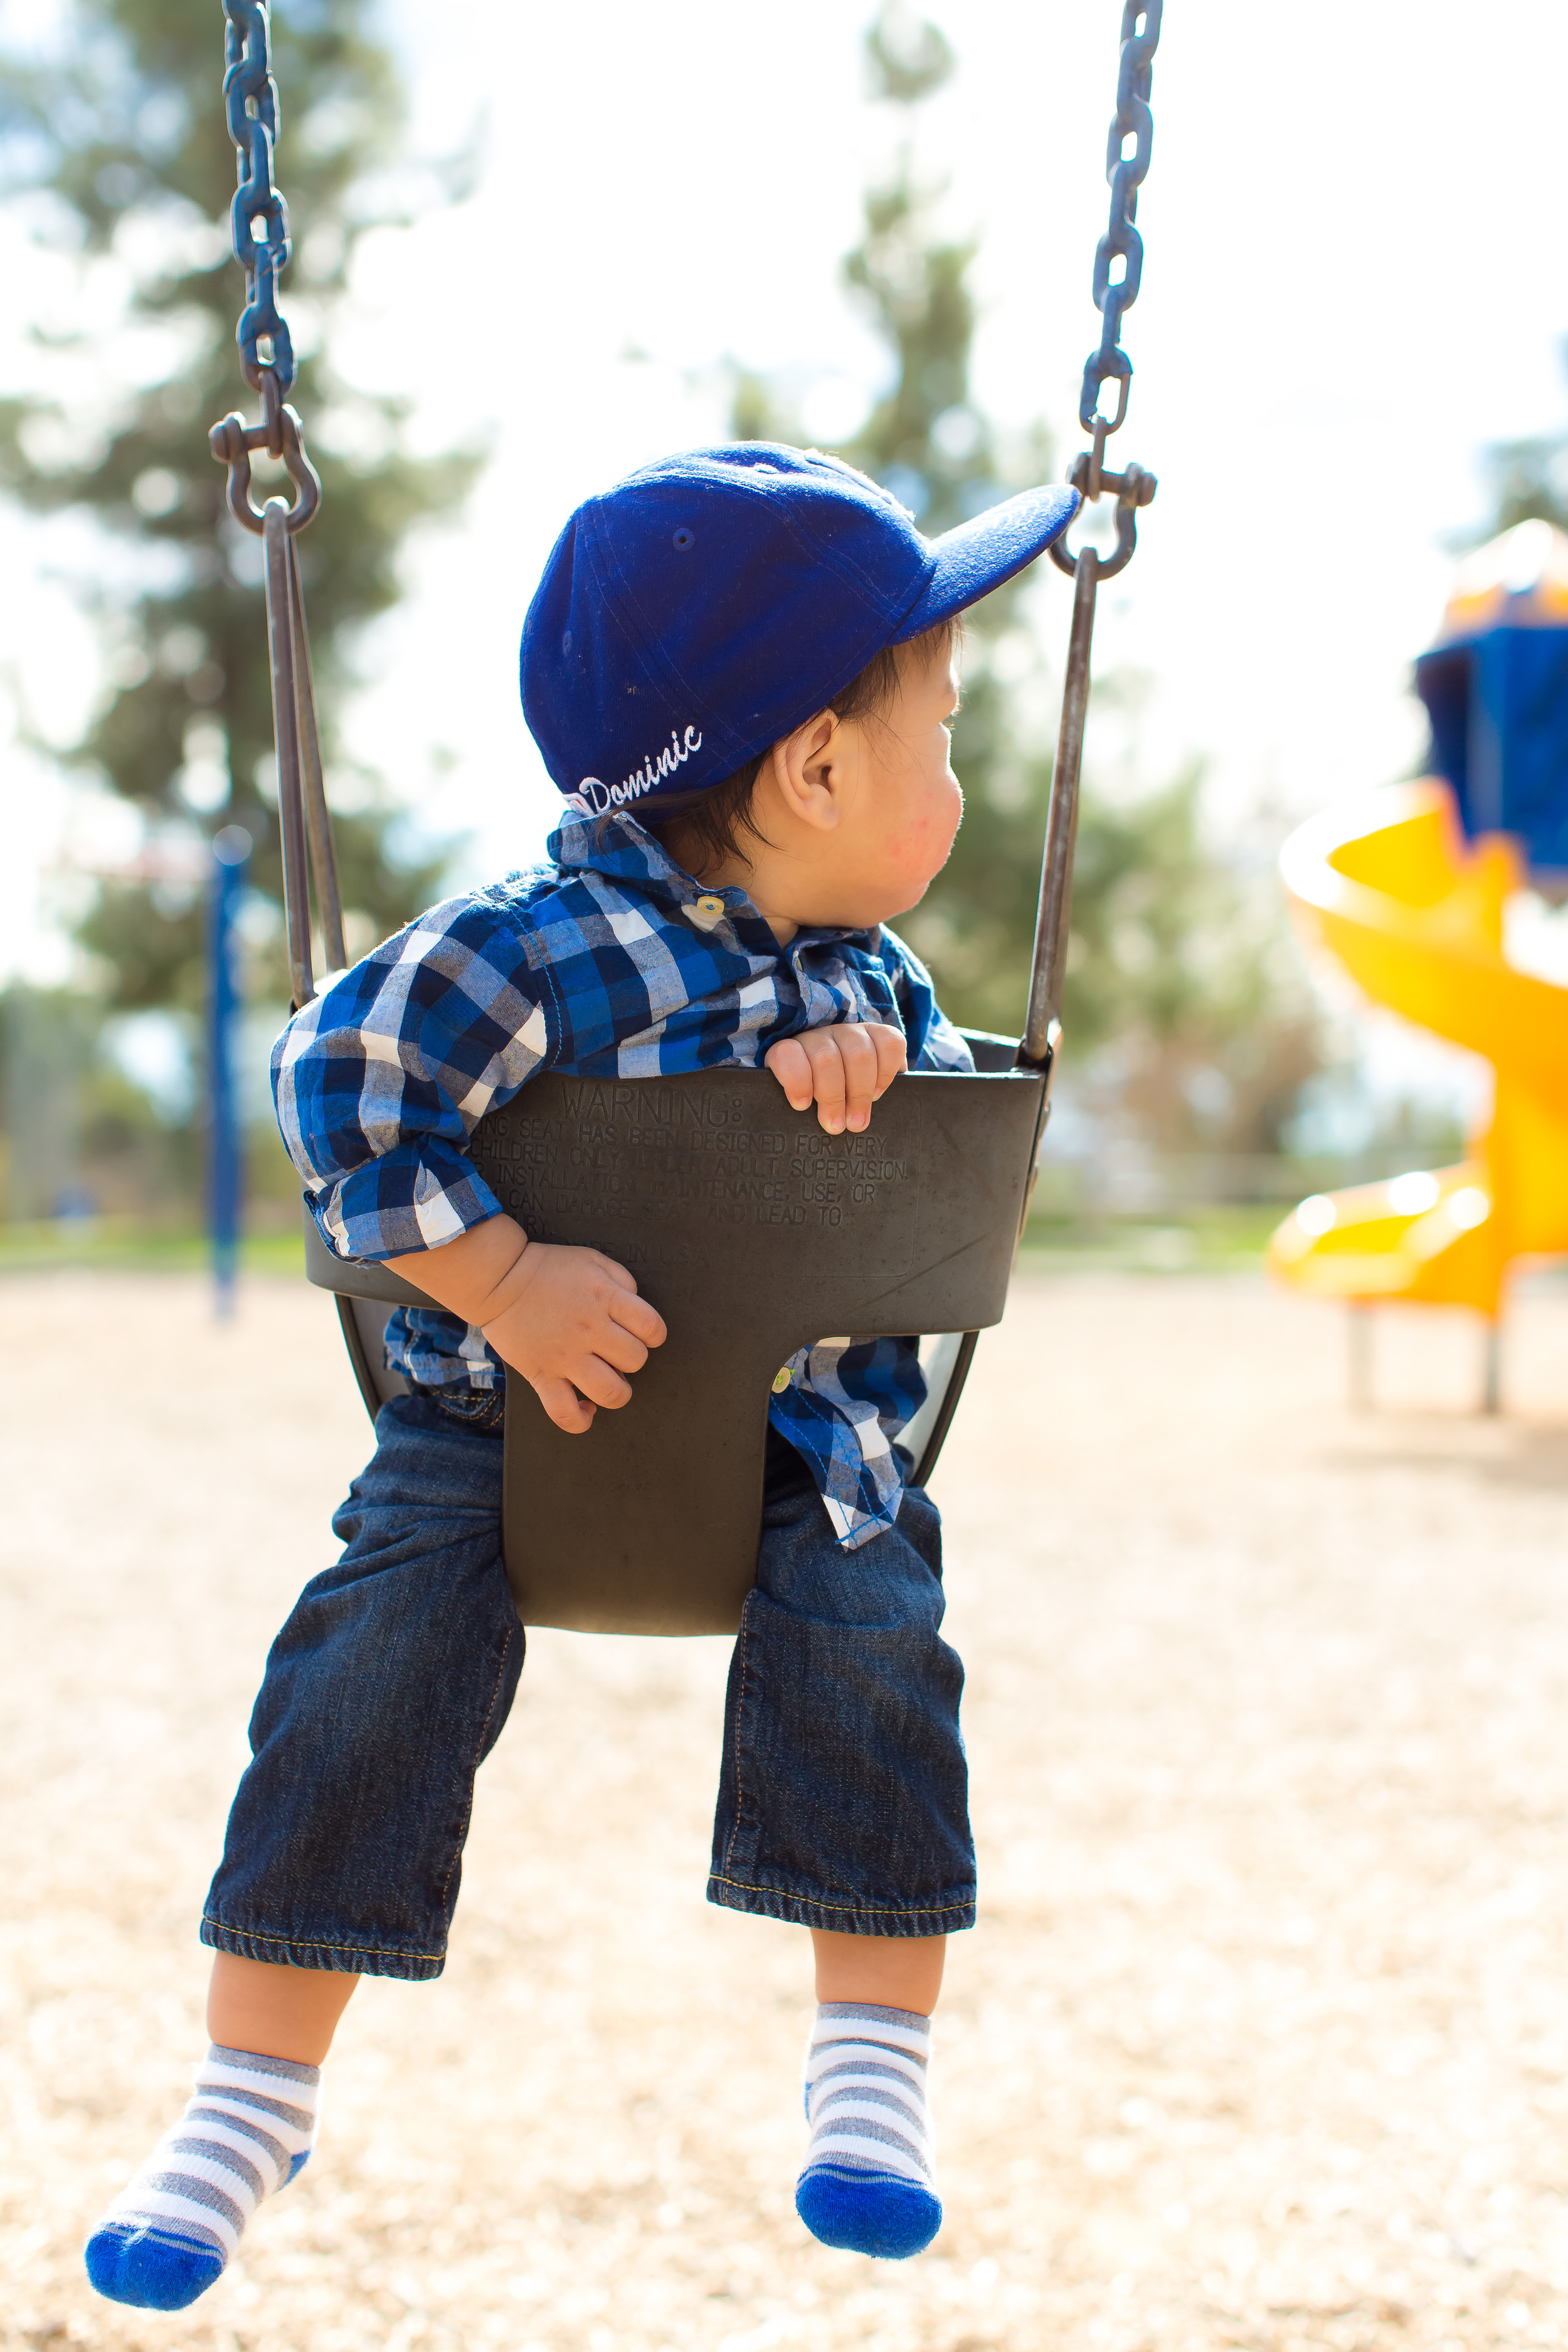 Family, casual, relaxed, fun, lifestyle, love, Los Angeles Family Photographer, Orange County Family Photographer, siblings, brother, sister, mother and daughter, father and son, mother and son, father and daughters, babies, what to wear, newborn photography, maternity photography, couples, Baby, grow with me, Fall Family Portraits, Spring family portraits, Winter family portraits, Summer family portraits, Baby photos, family portrait, family photography, family photographer, candid photography, newborn photography, newborn photographer, maternity photography, family photos, newborn baby photos, baby portraits, family portrait photography, family, portrait photographer, family photo shoot, infant photography, baby photographer, photography pricing, baby photoshoot, maternity photos, pregnancy photos, kids photos, portrait photographers, family photography prices, newborn pictures, family portrait photographer, children photos, Baby Photographers in Los Angeles CA, Family Portrait in Los Angeles CA, Family Portrait Photography in Los Angeles, professional portrait photography, professional photographers, new baby photos, professional family photos, best portrait photographers, toddler photography, best newborn photography, best family photographer, professional pregnancy photos, top portrait photographers, outdoor family portraits, baby photography at home, professional baby photos, find photographers, Family portrait pricing packages, Family portrait photography package, family portrait photography prices, family photo session prices, what to wear for a family session, tips on what to wear for family portraits, guide for a successful photo session with toddlers, photo session with toddlers